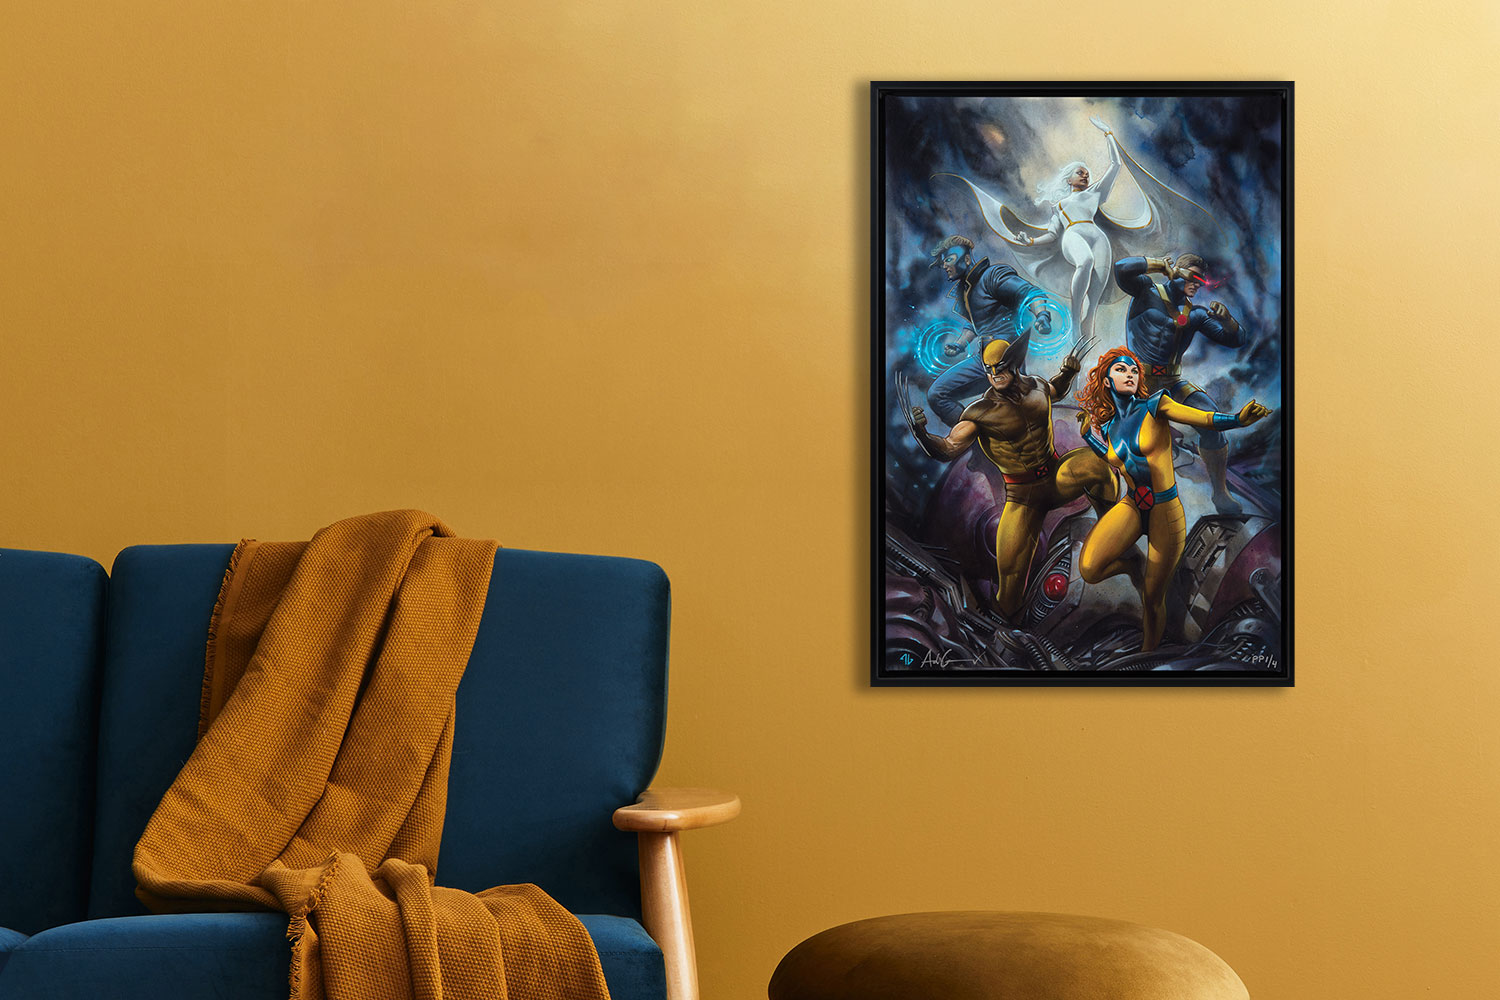 House of X #1 Art Print feature image